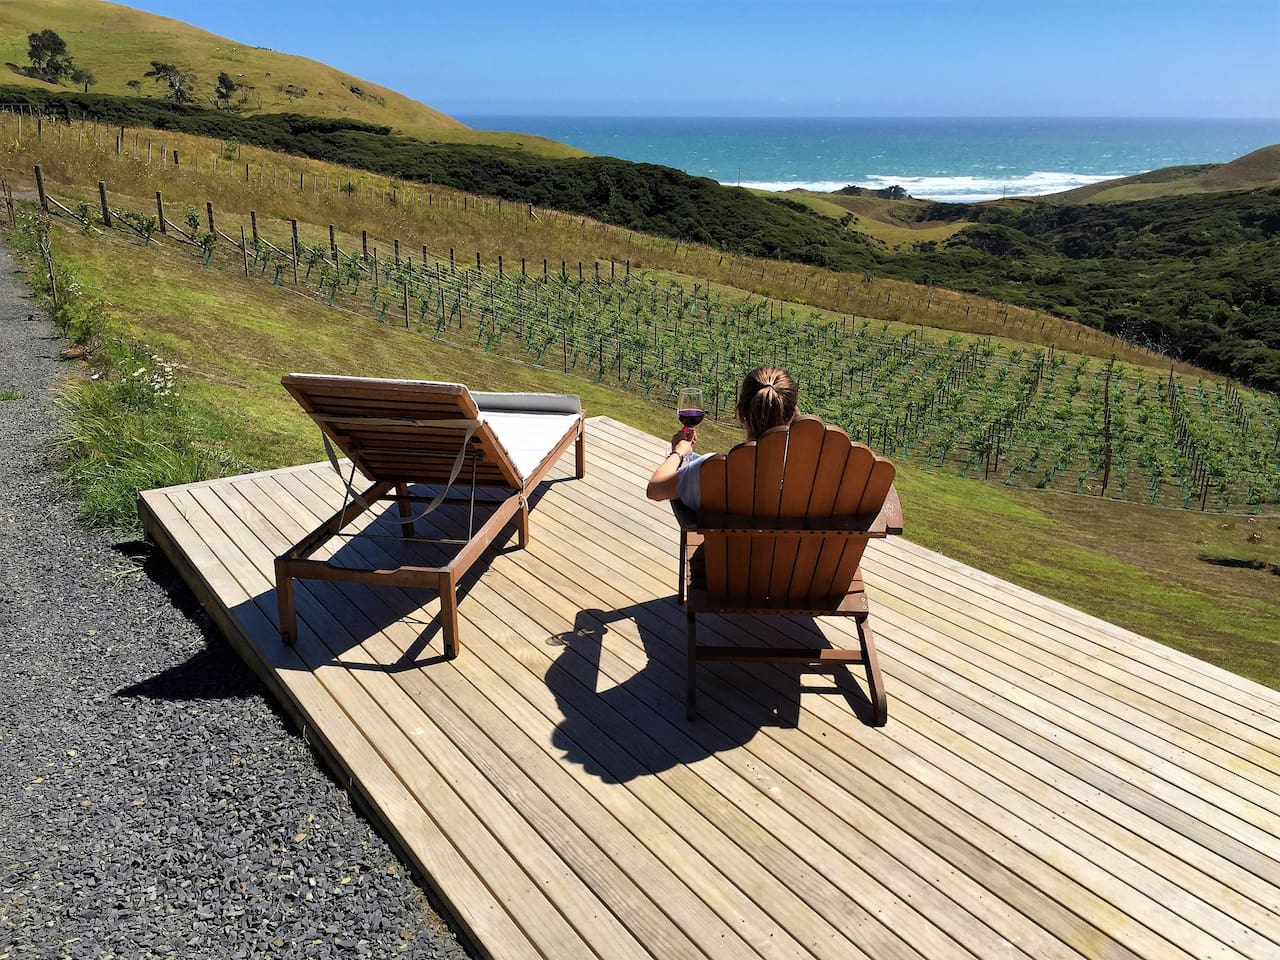 Enjoy a wine on the vineyard viewing deck overlooking the vineyard out to sea!